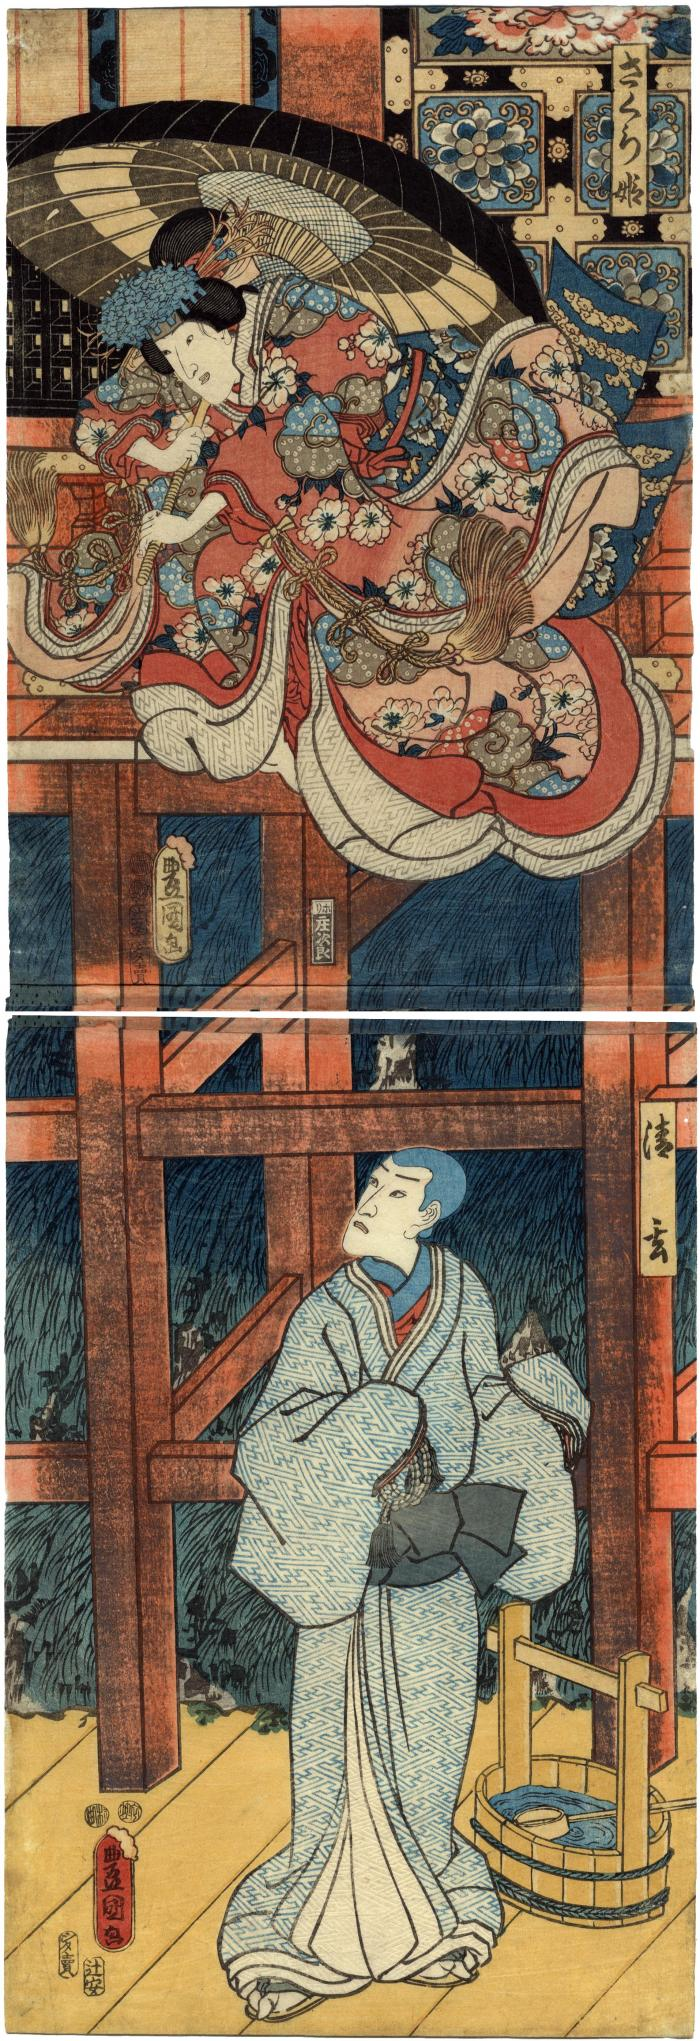 Iwai Kumesaburō III as Sakurahime (さくら姫) above and Ichikawa Danjūrō VIII as Seigen (清玄) below from the play <i>Koigoromo Karigane-zome</i> (恋衣雁金染)